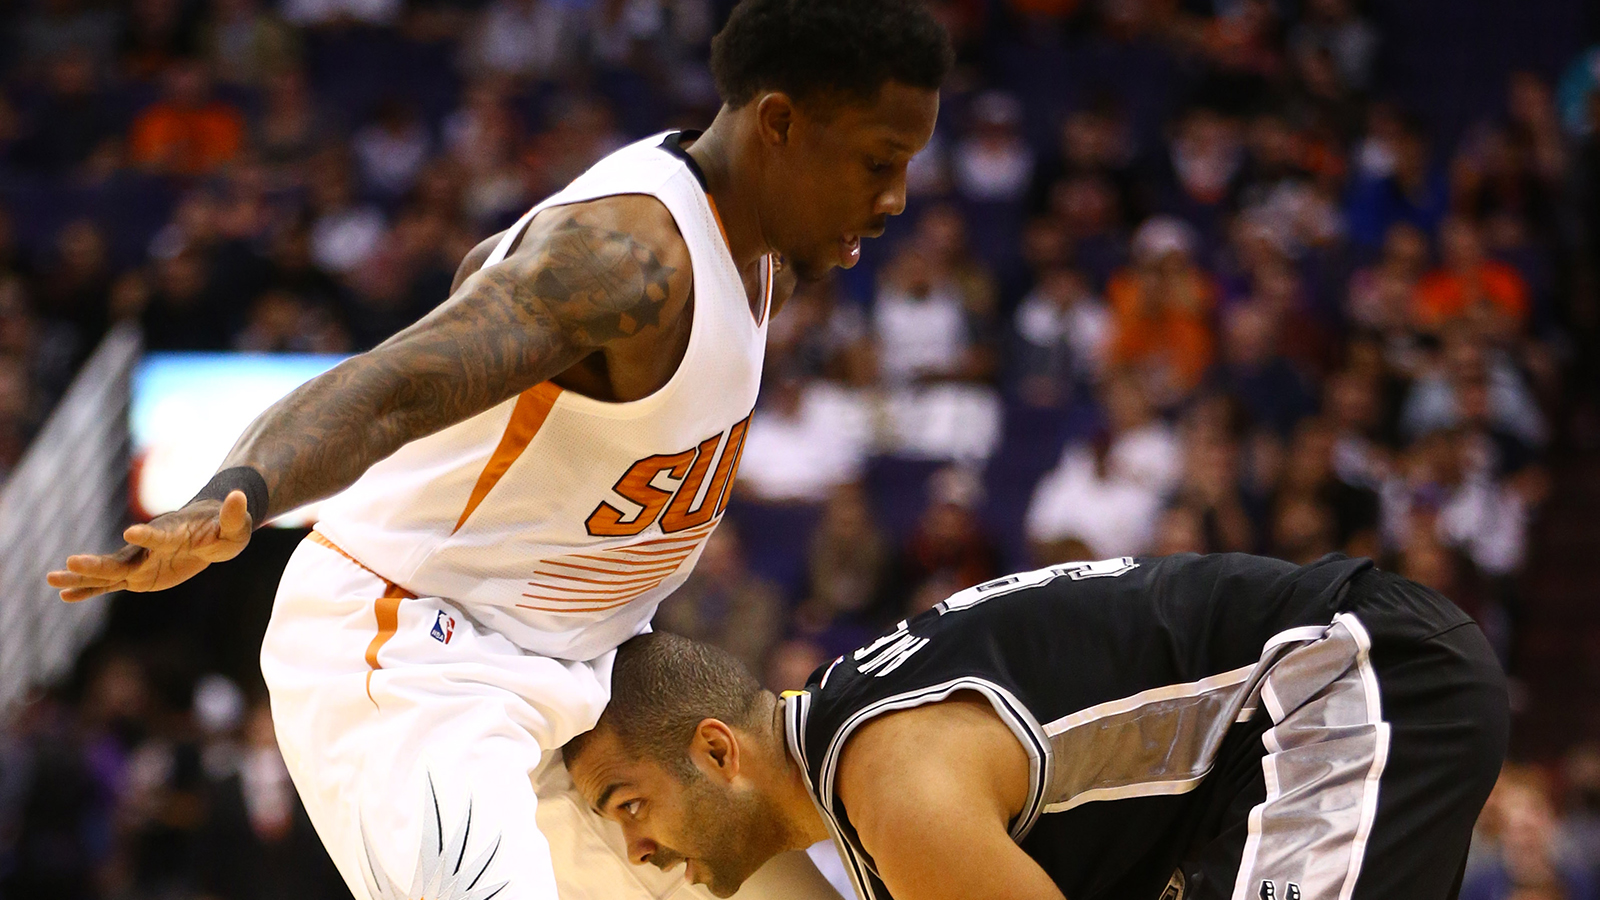 Suns fade late, fall to road-savvy Spurs